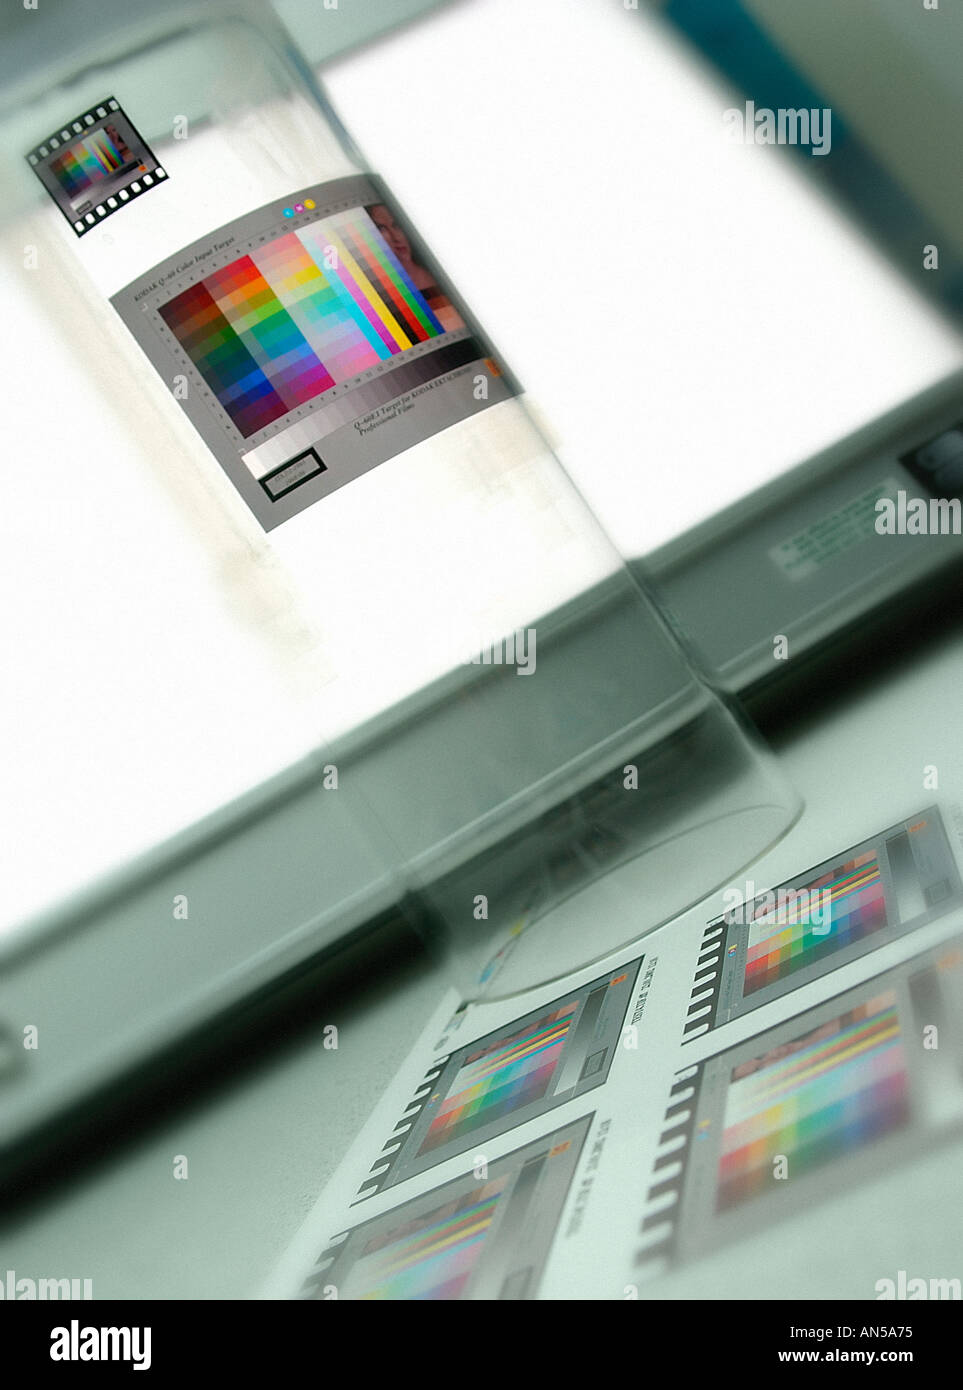 COLOUR CALIBRATION OF DRUM SCANNER USING KODAK TEST TRANSPARENCY - Stock Image